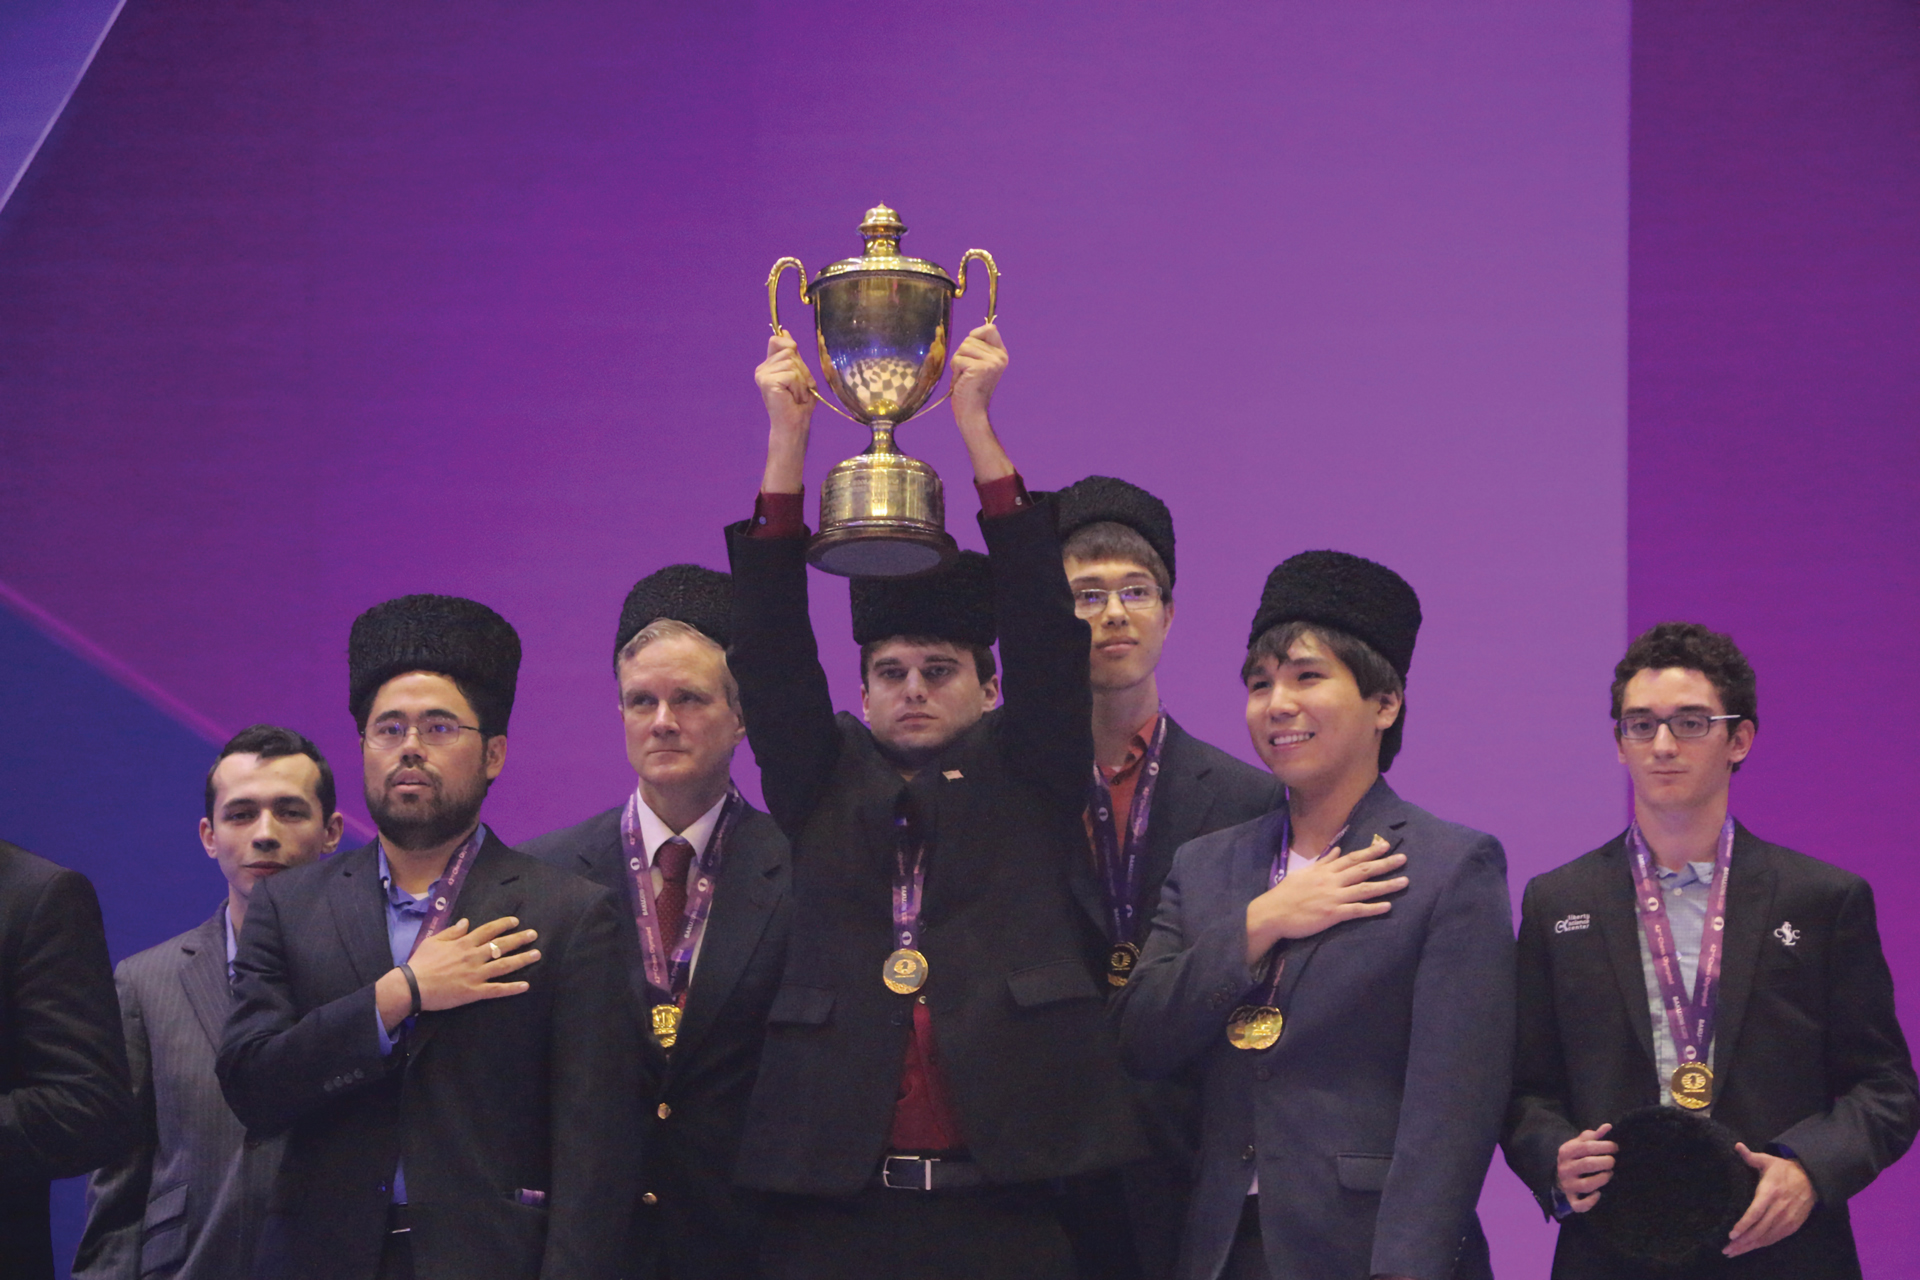 2016 American Olympiad Team with Trophy